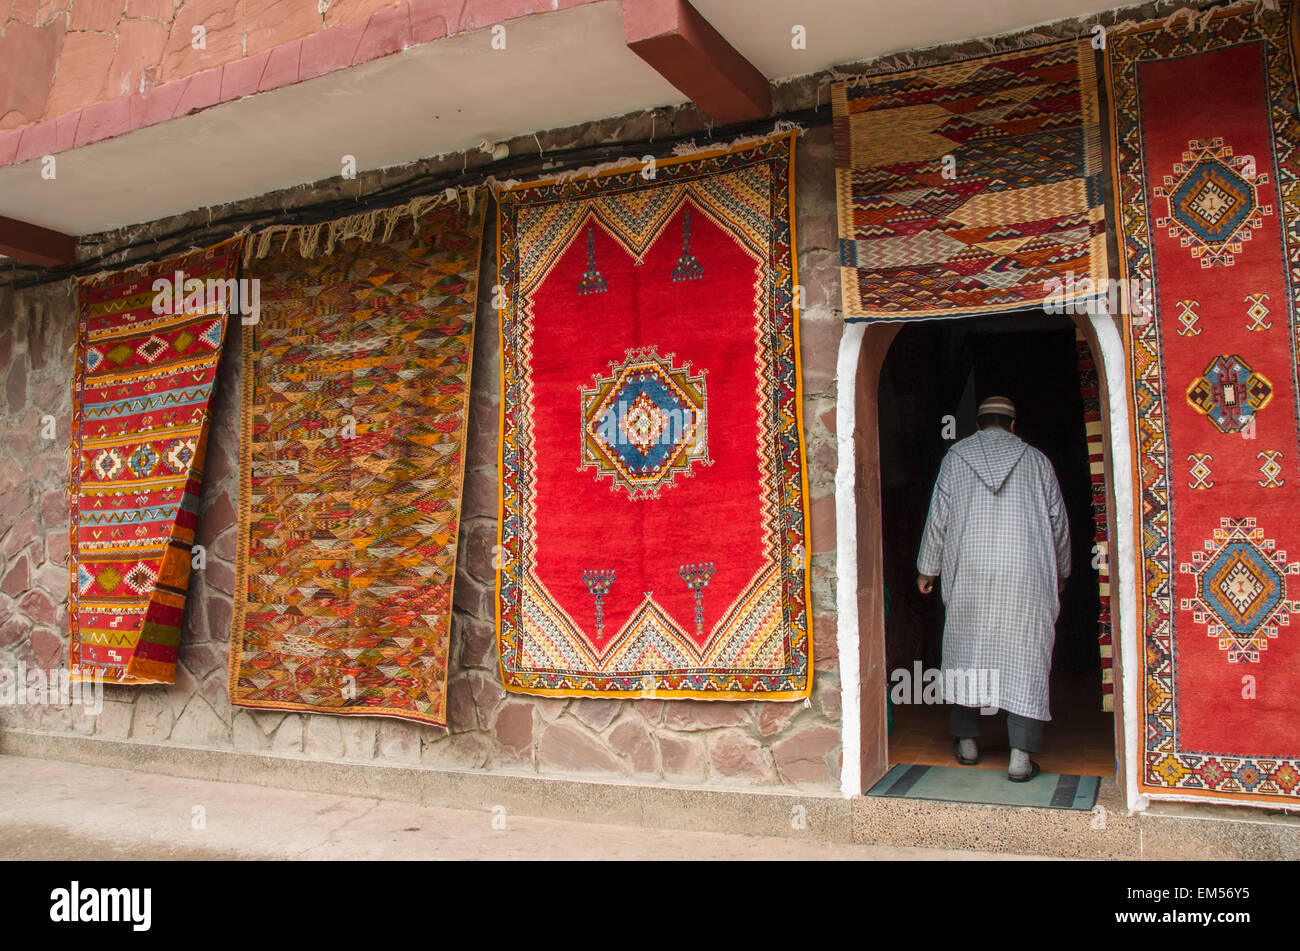 Hanging Rugs Colorful Rugs Hanging On Display Outside Shop Morocco Stock Photo